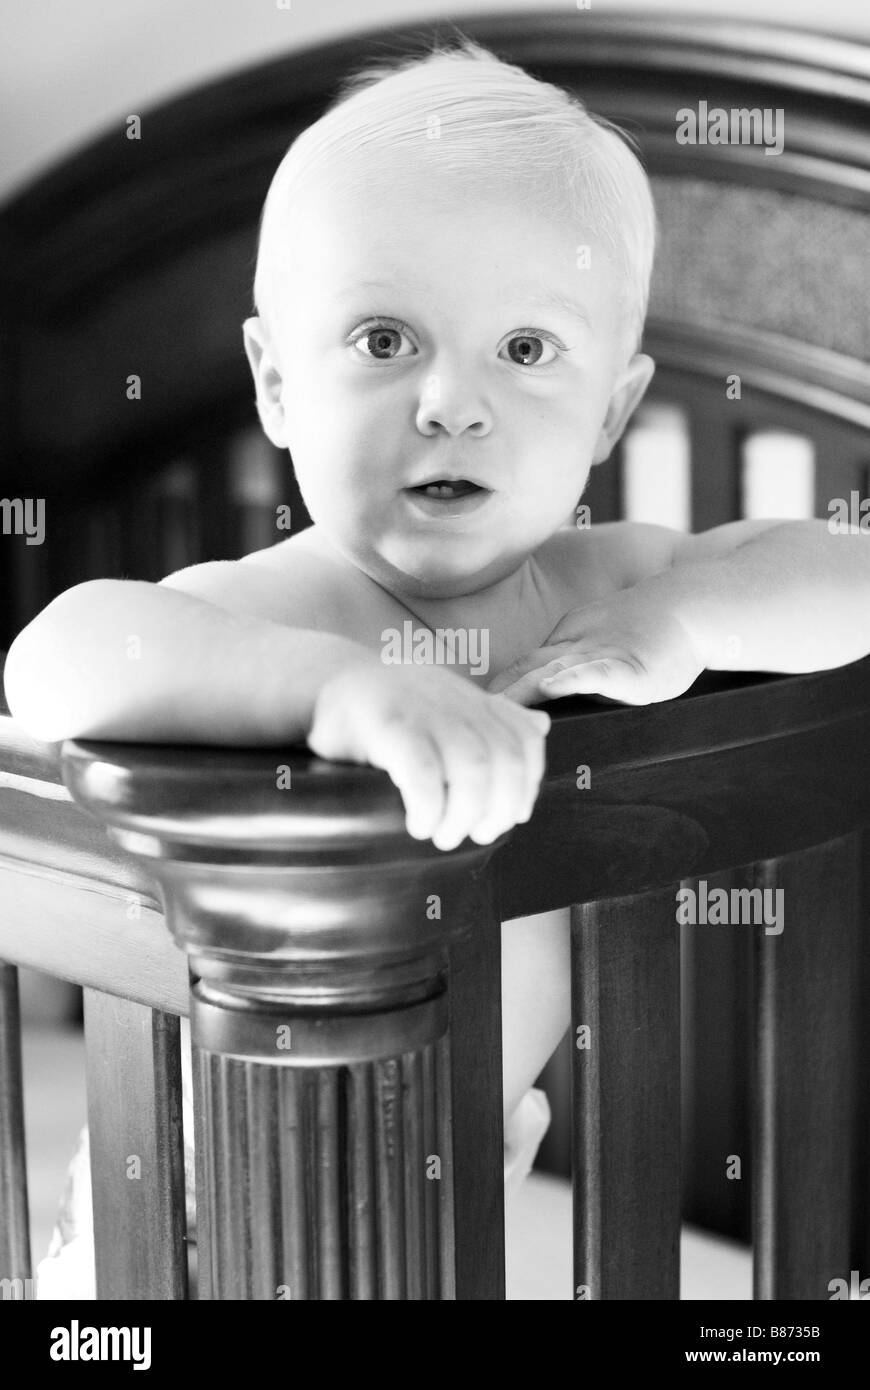 Baby standing in crib - Stock Image